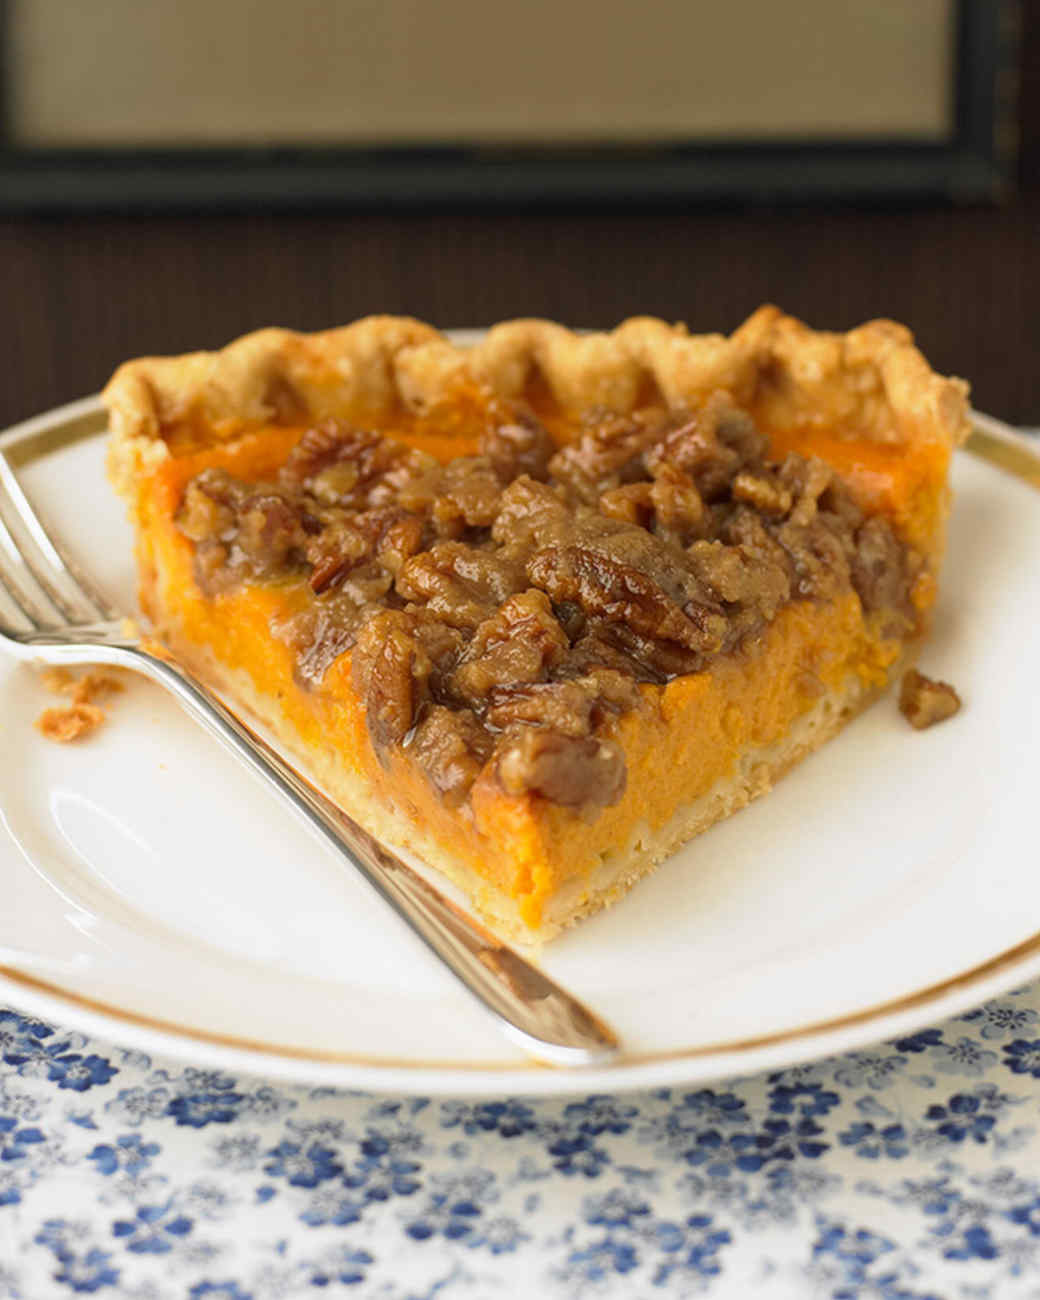 Sweet Potato Pie with Pecan Topping